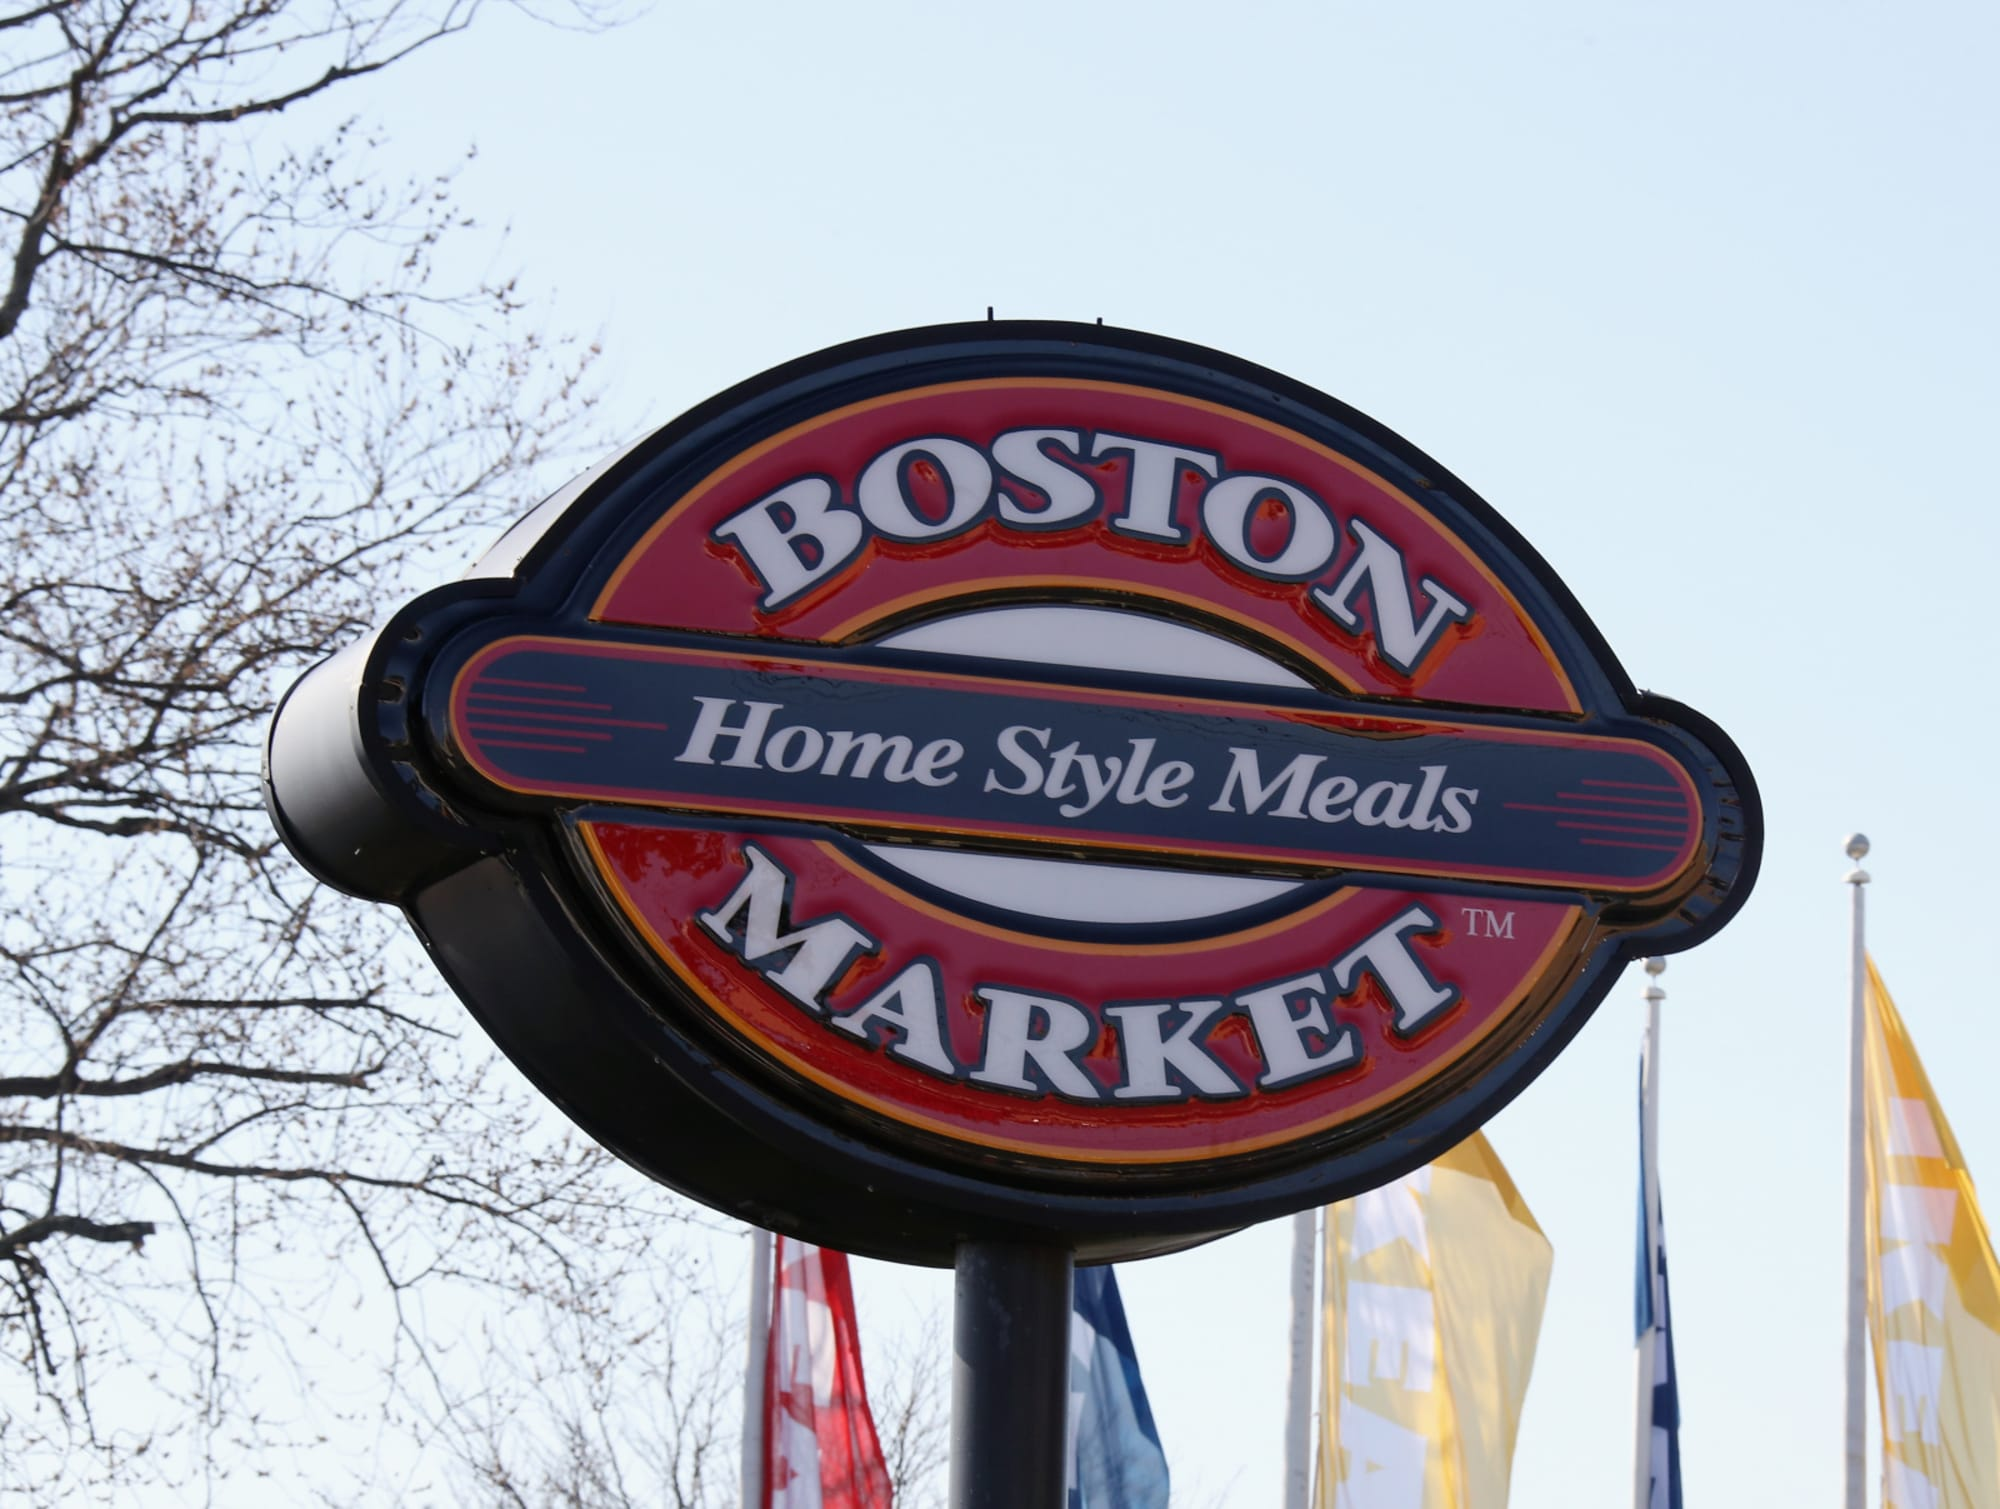 Hungry for free food? Everyone can get a free Boston Market Meal